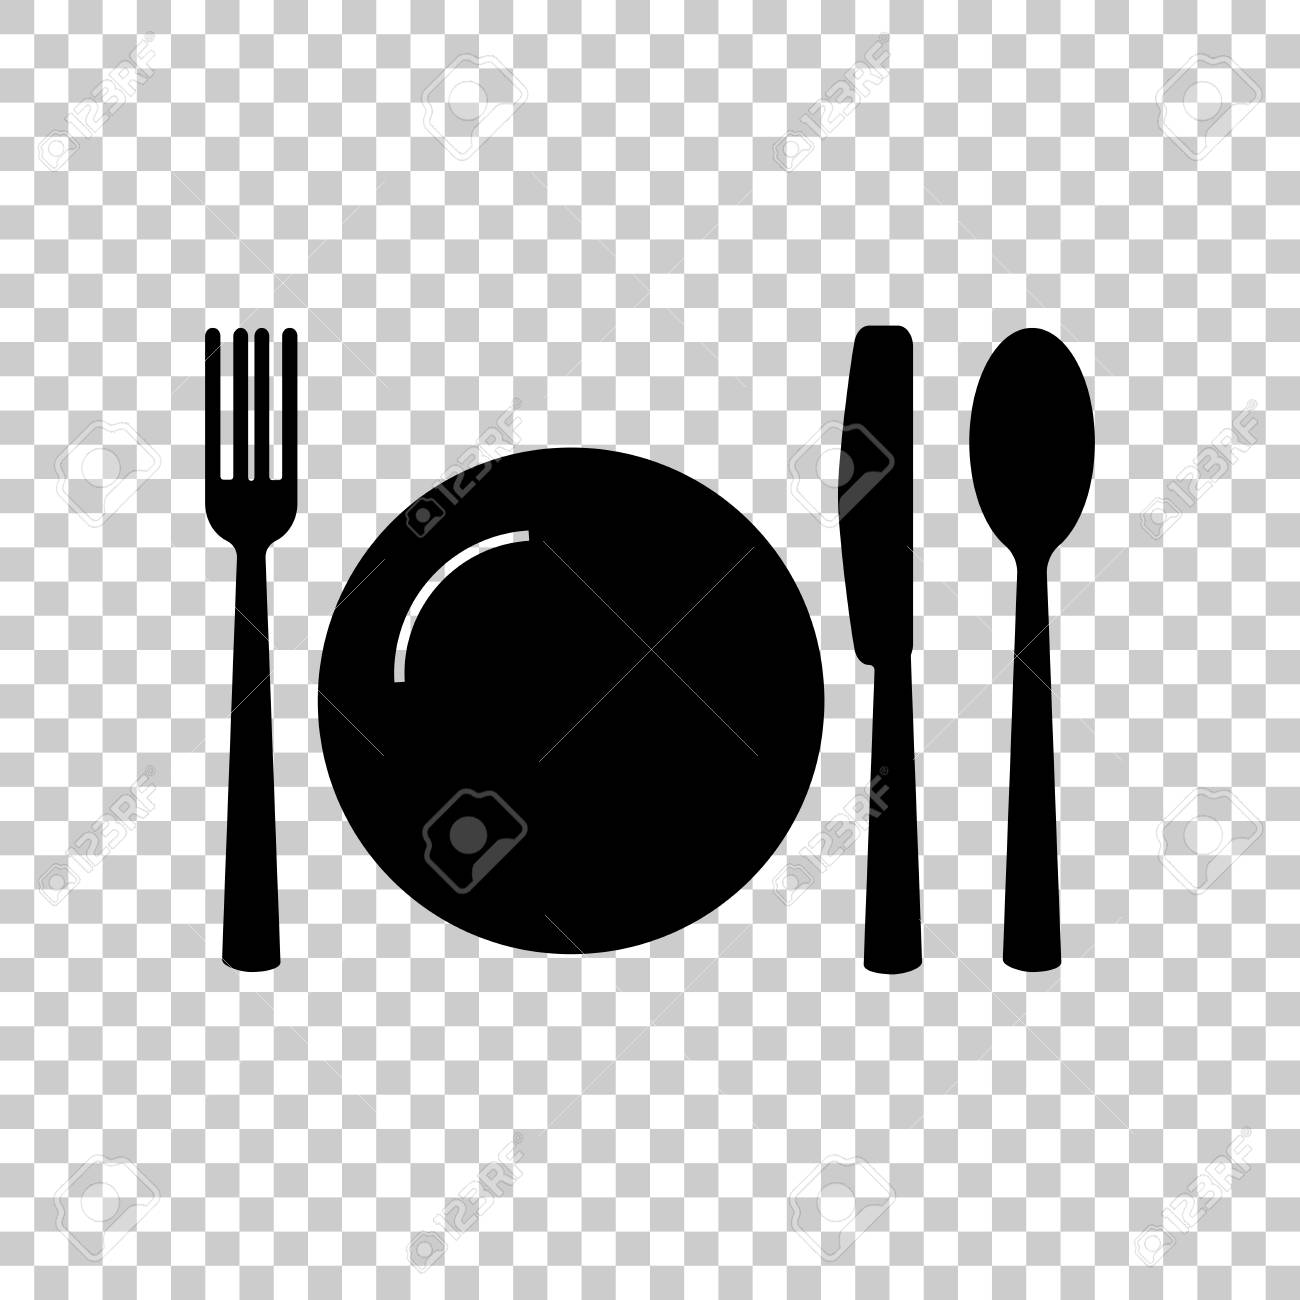 Knife fork spoon and plate. Cutlery. Table setting. Vector icon illustration  sc 1 st  123RF.com & Knife Fork Spoon And Plate. Cutlery. Table Setting. Vector ...